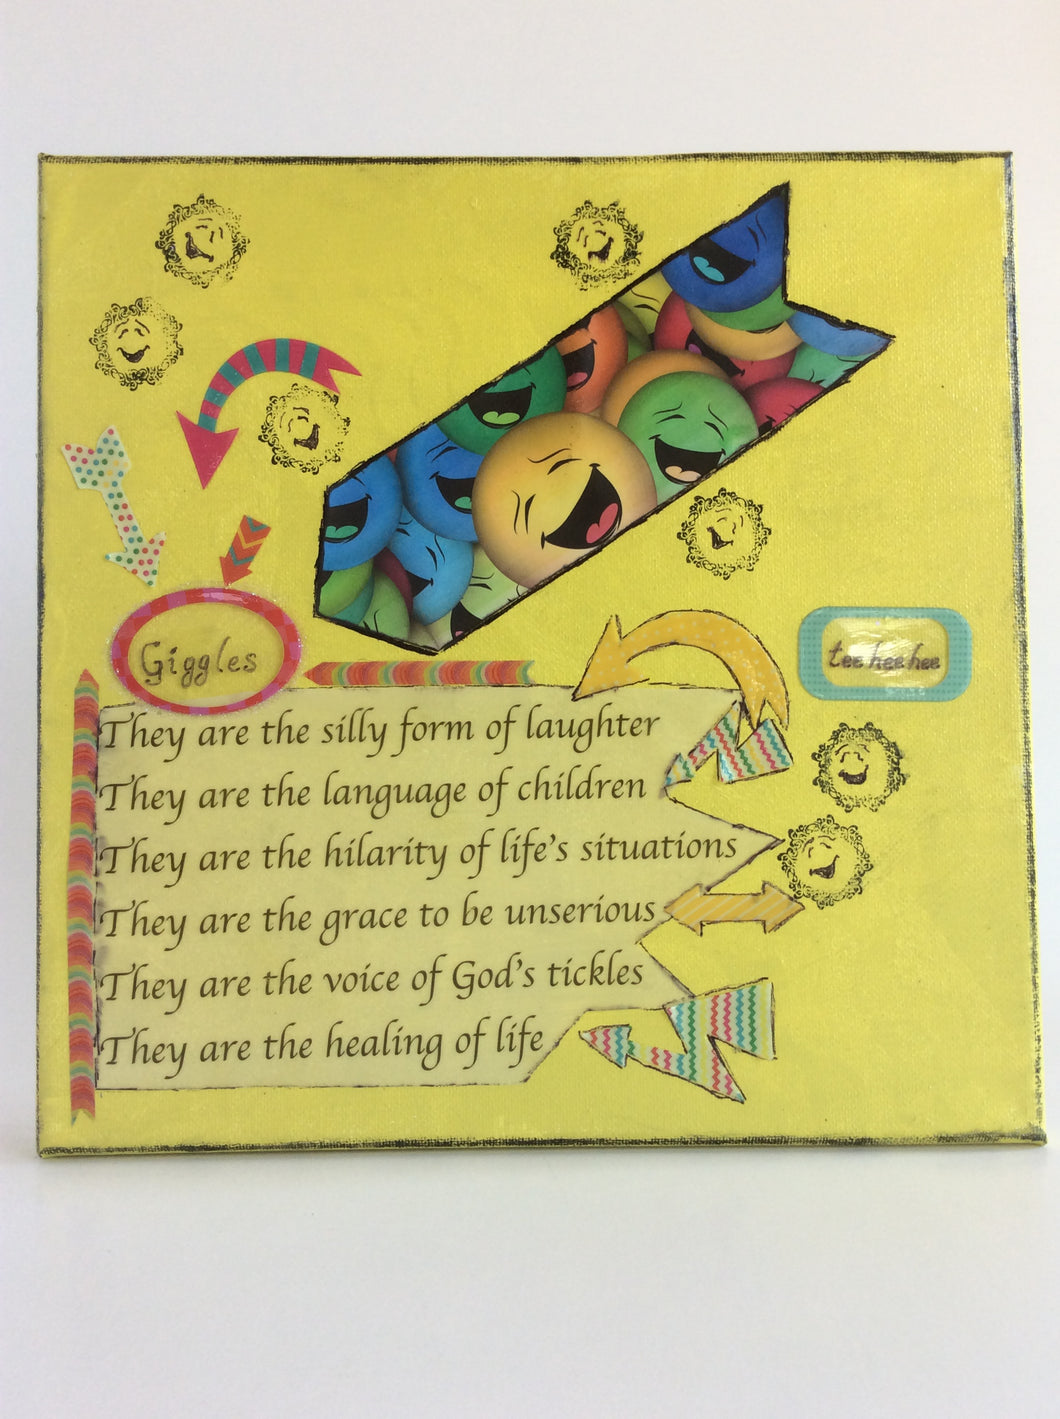 Giggles is an original poem on canvas about the laughter and joy of children or being child-like form poempieces.com shown in yellow